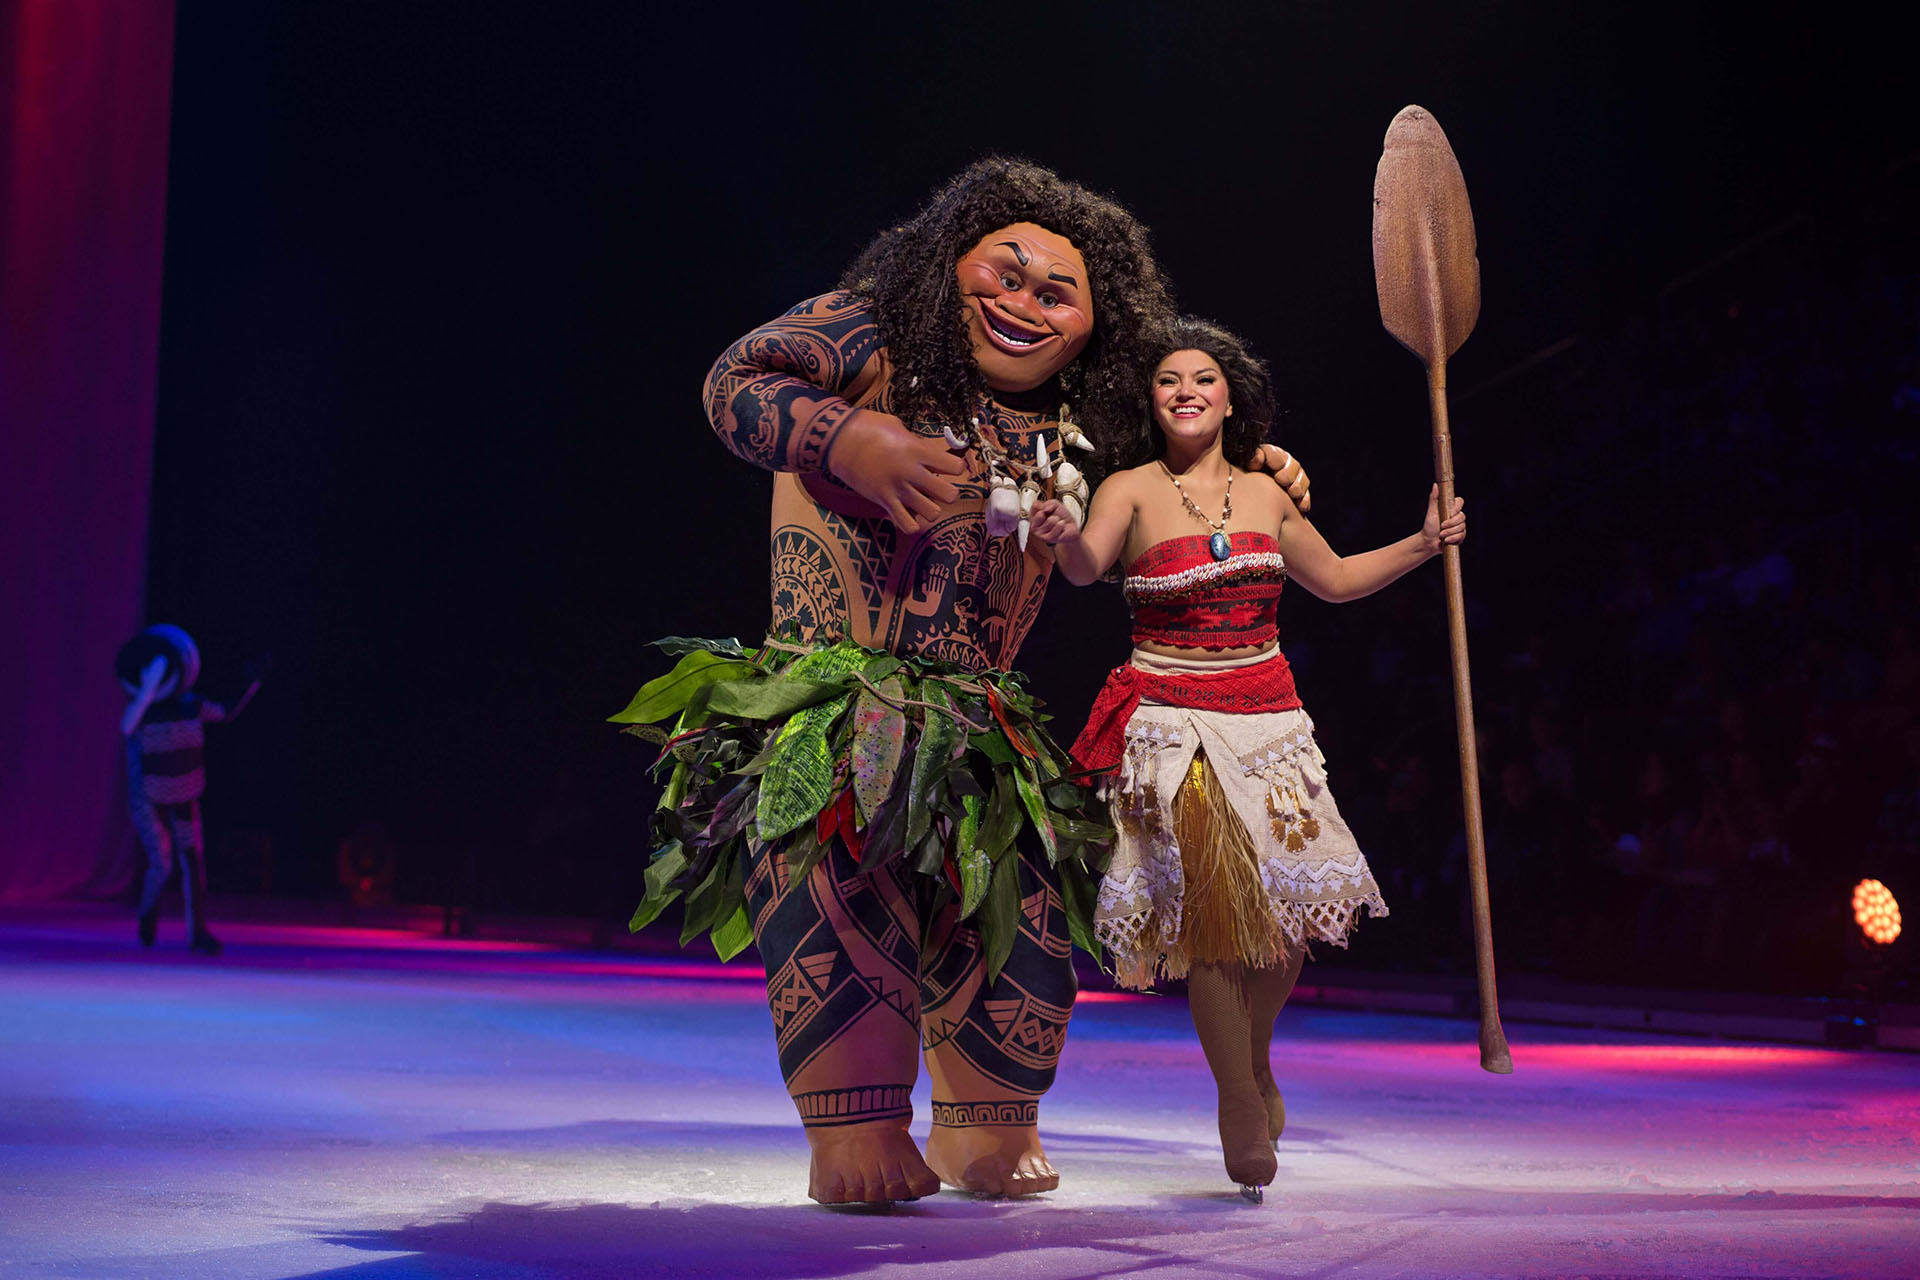 Moana and Maui skating on ice